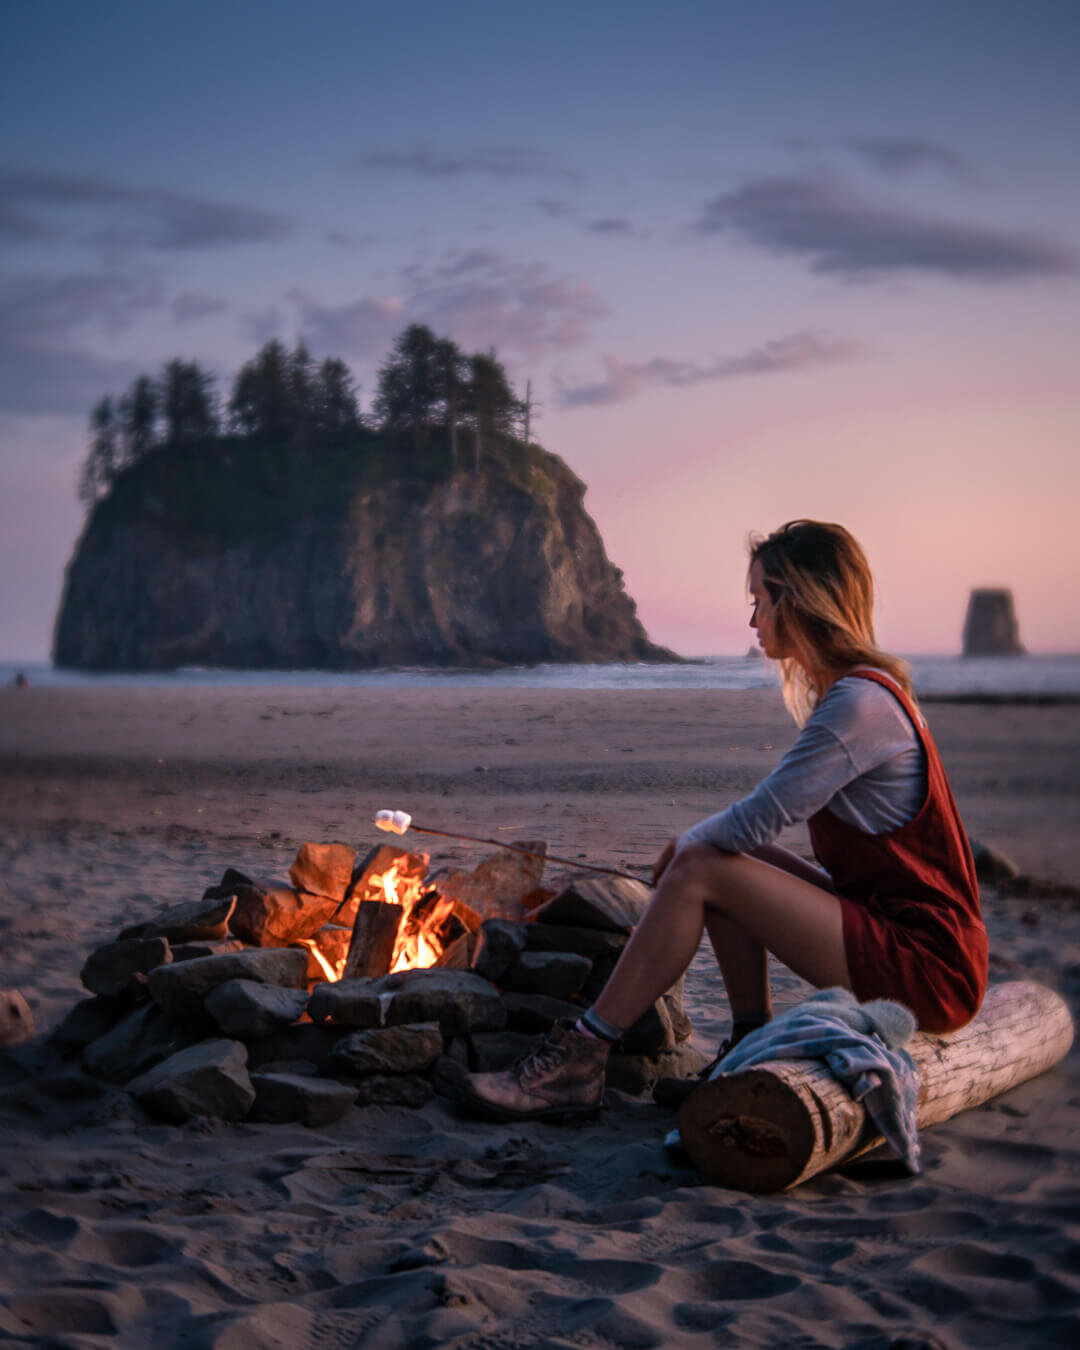 Roasting marshmallows over the camp fire at Second Beach on the Olympic Peninsula. Wearing: Toad&Co  Jumper  ,The North Face  Long Sleeve Shirt , and Blundstone Lace-Up  Boots .